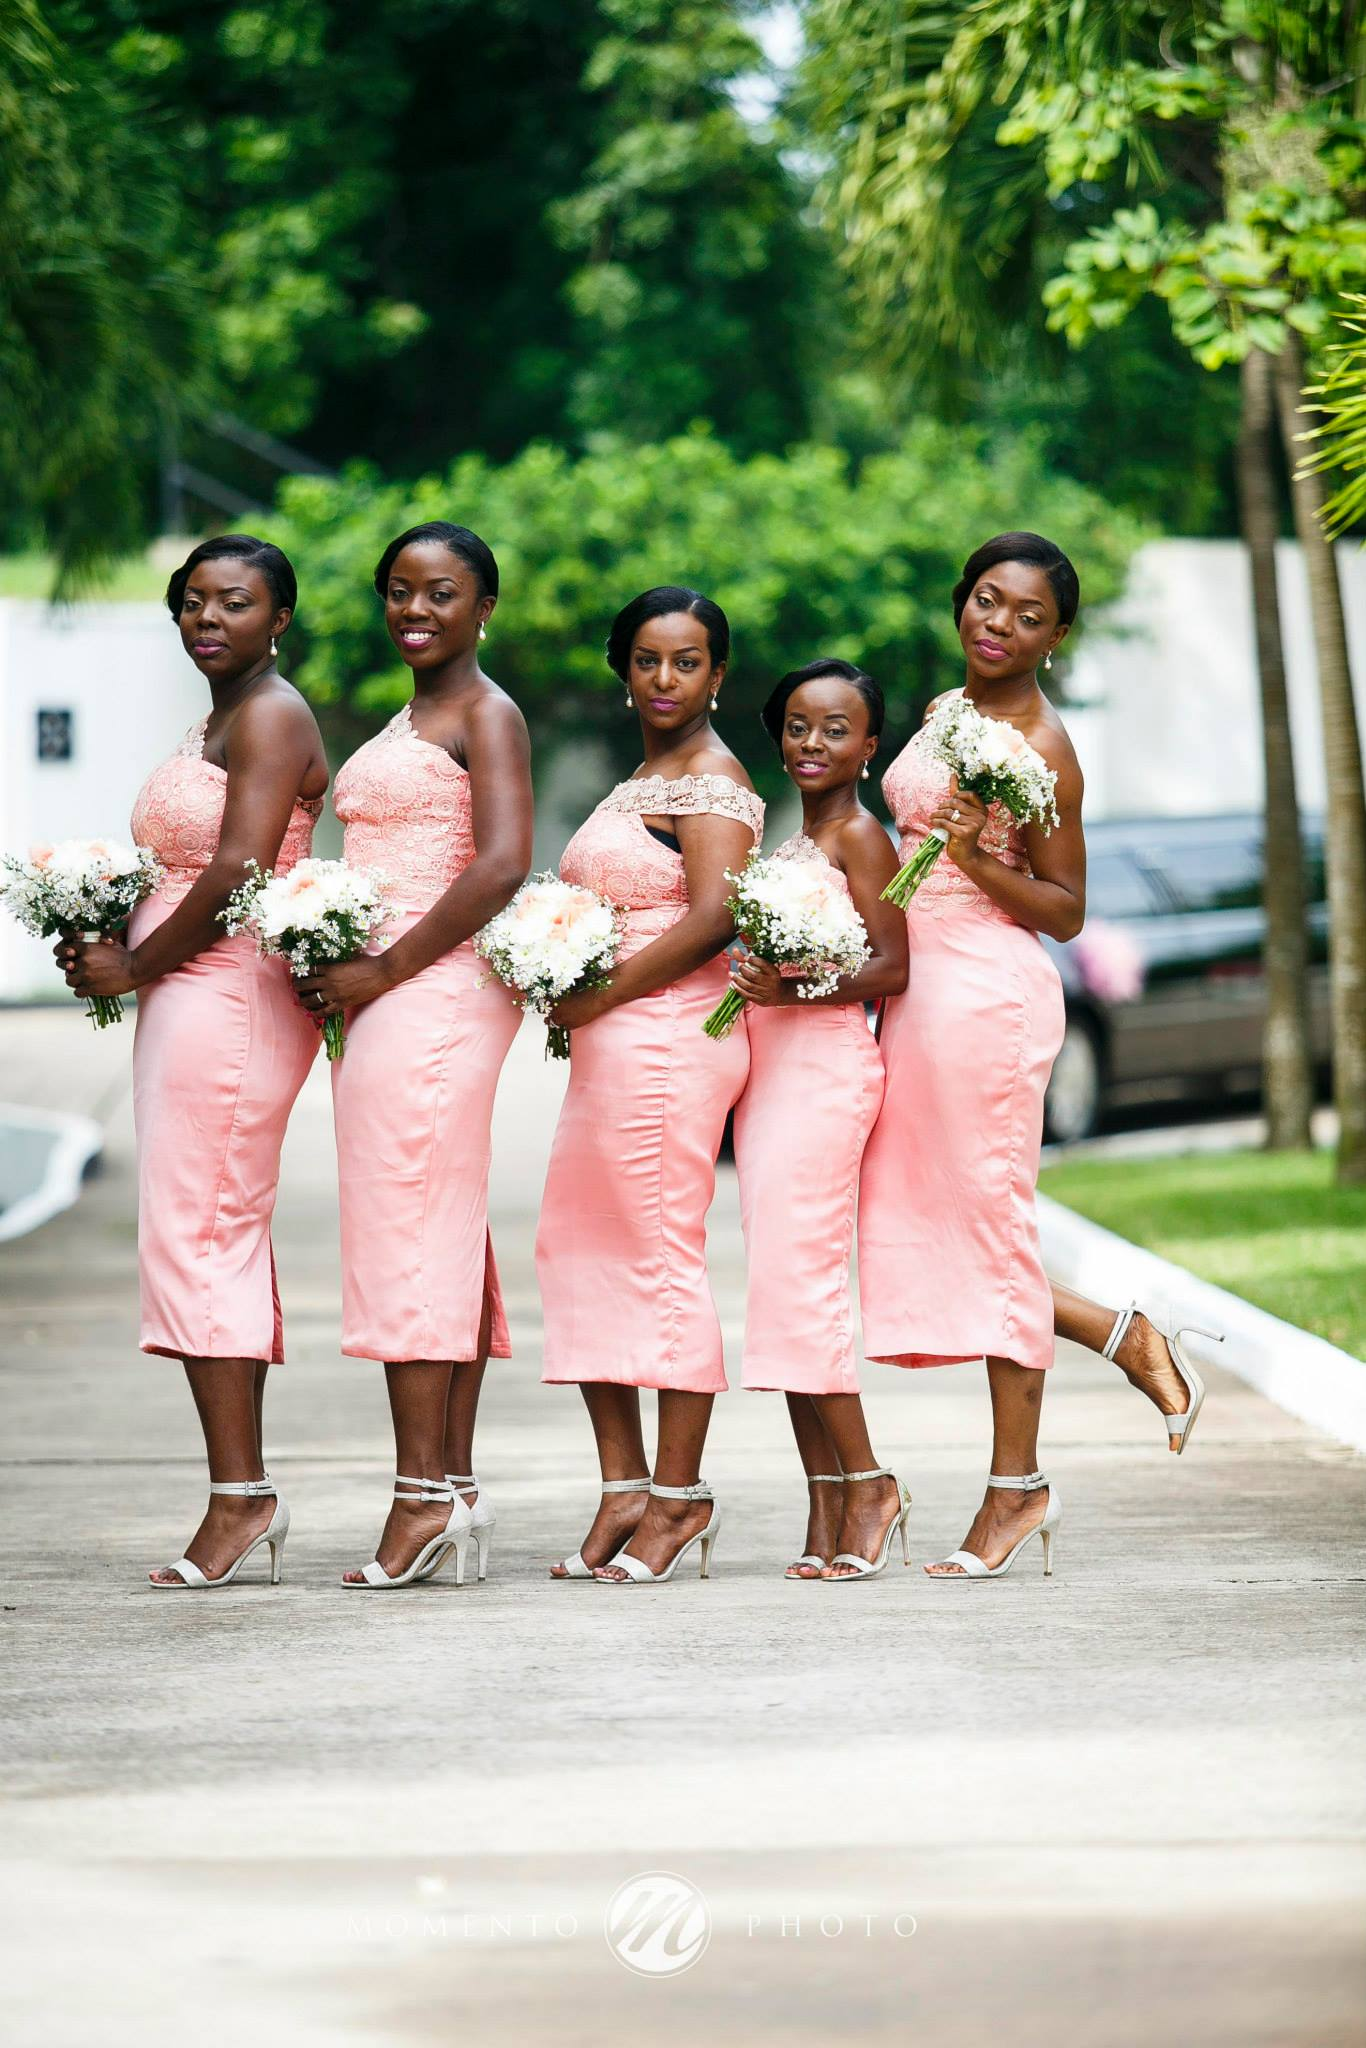 Weddings in Ghana - The Wedding of Maa & Ekanem